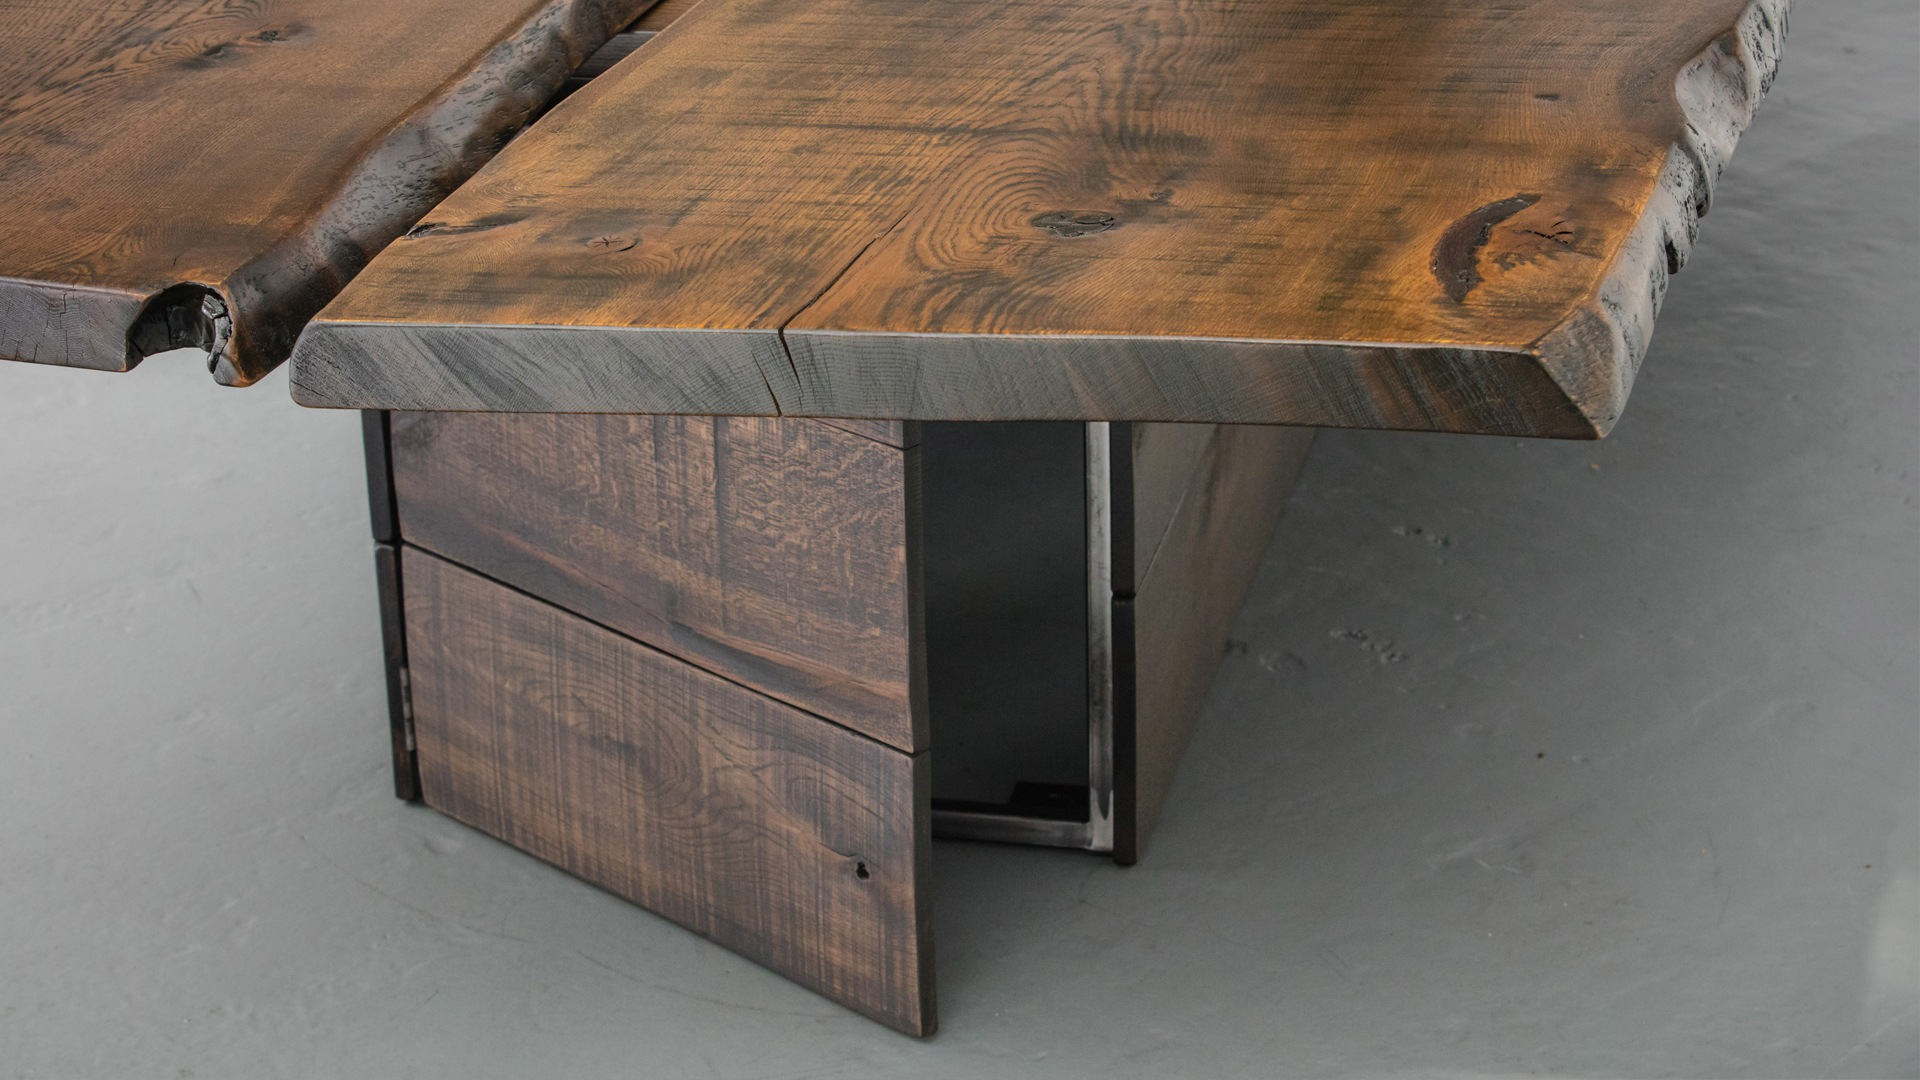 oak table sv-grand-oak-table-003 HUHFRXY